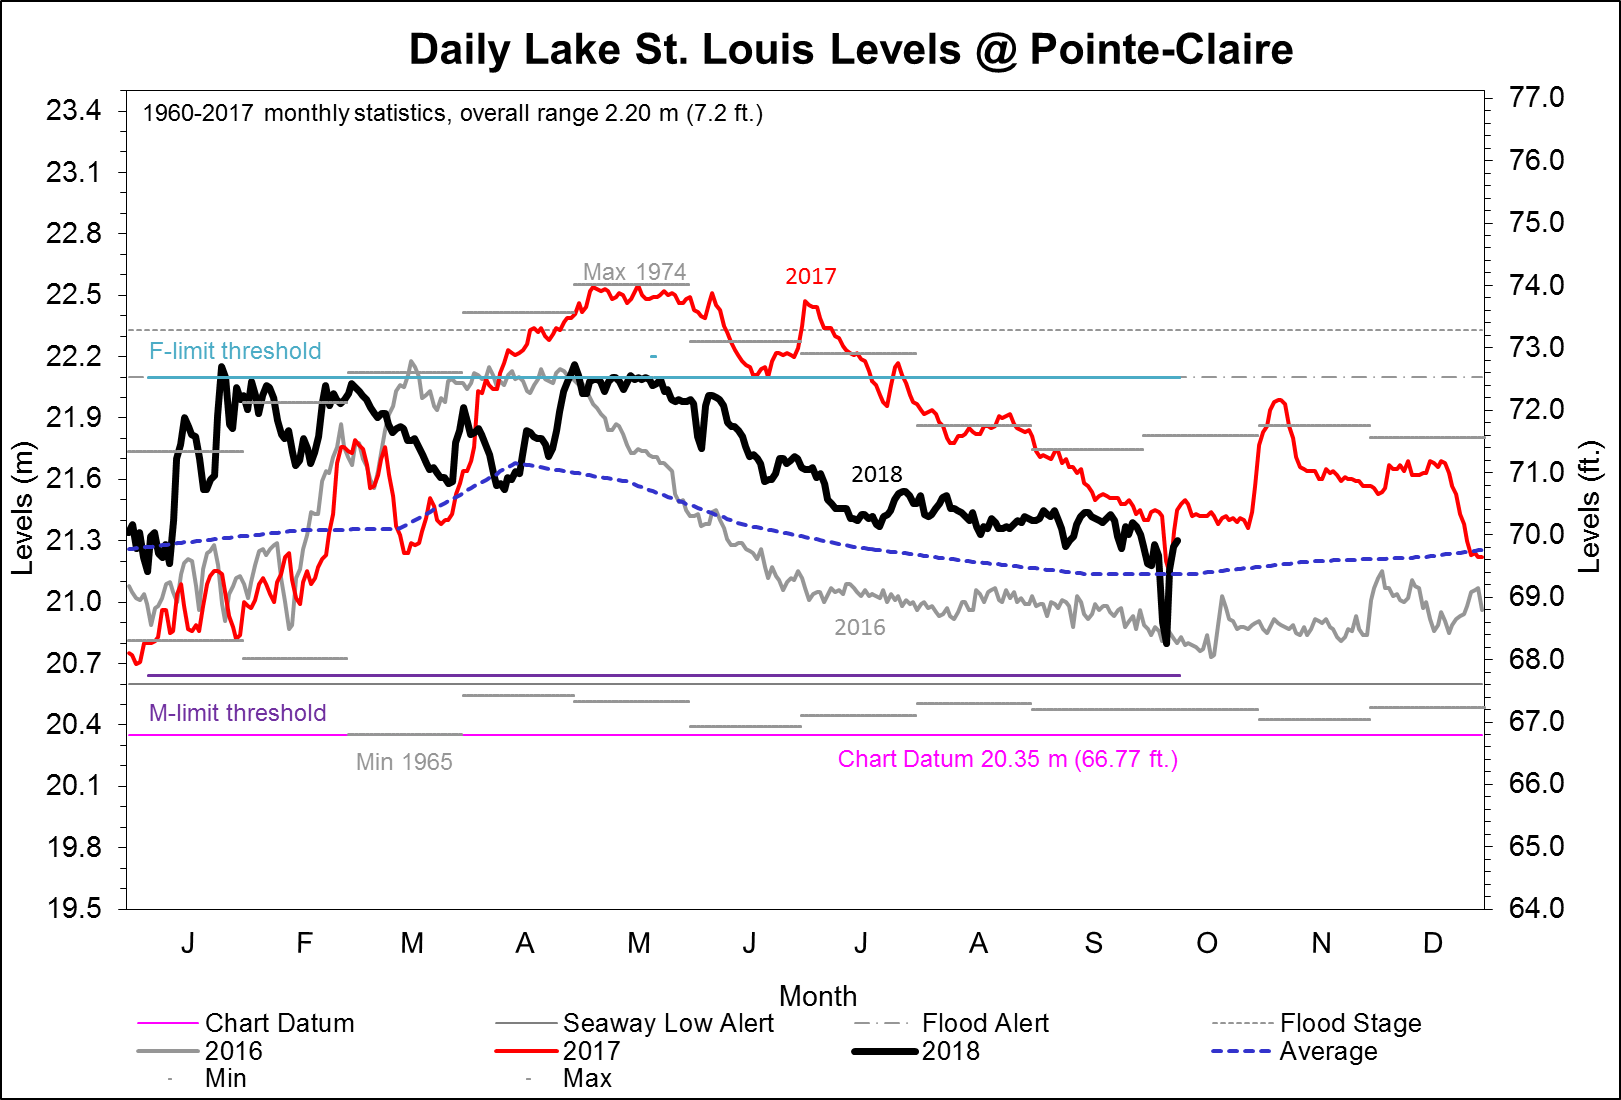 Daily Lake St. Louis Levels